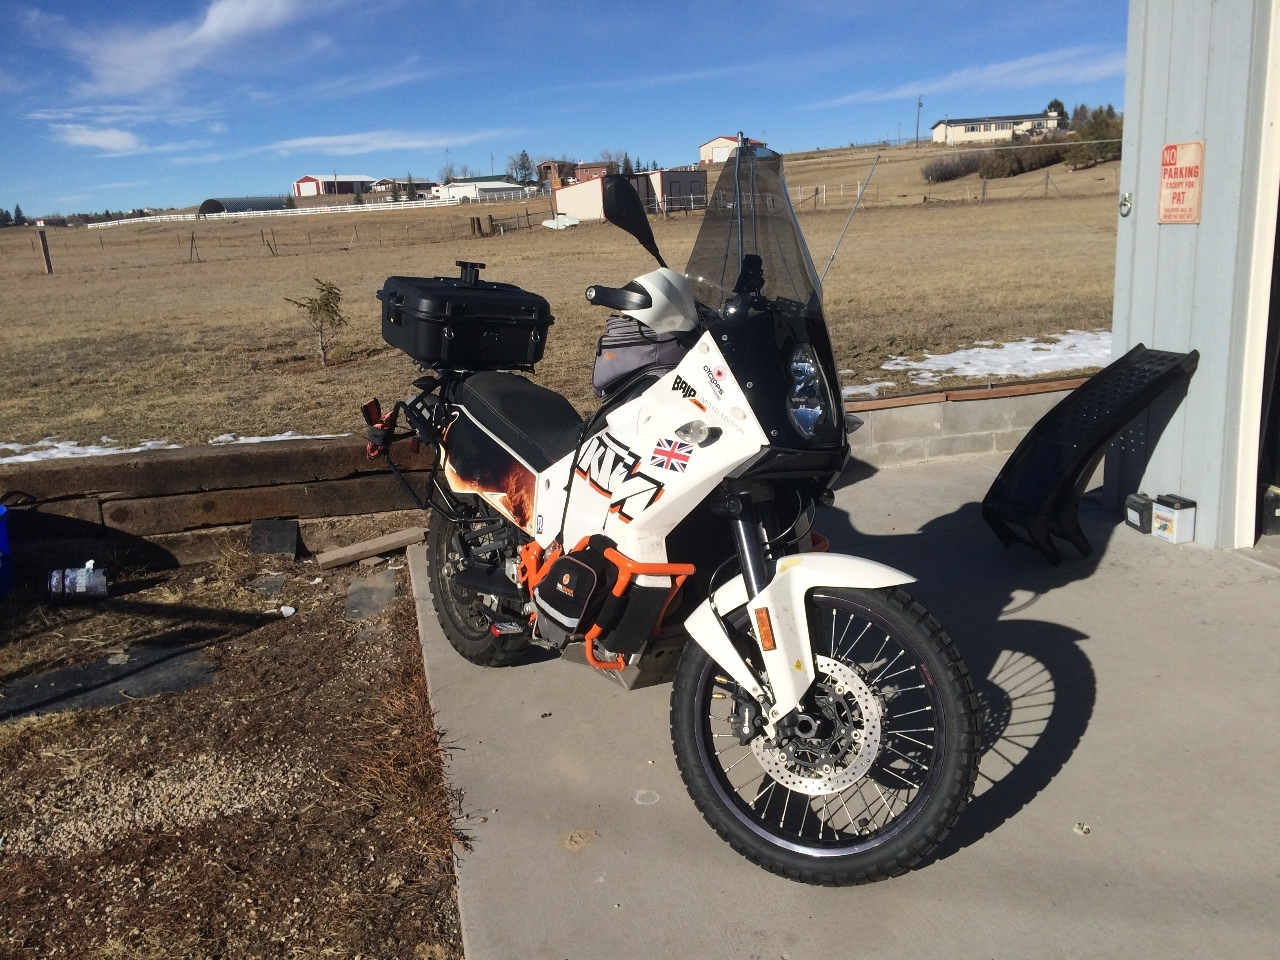 990 For Sale - Ktm Dump Motorcycles - Cycle Trader